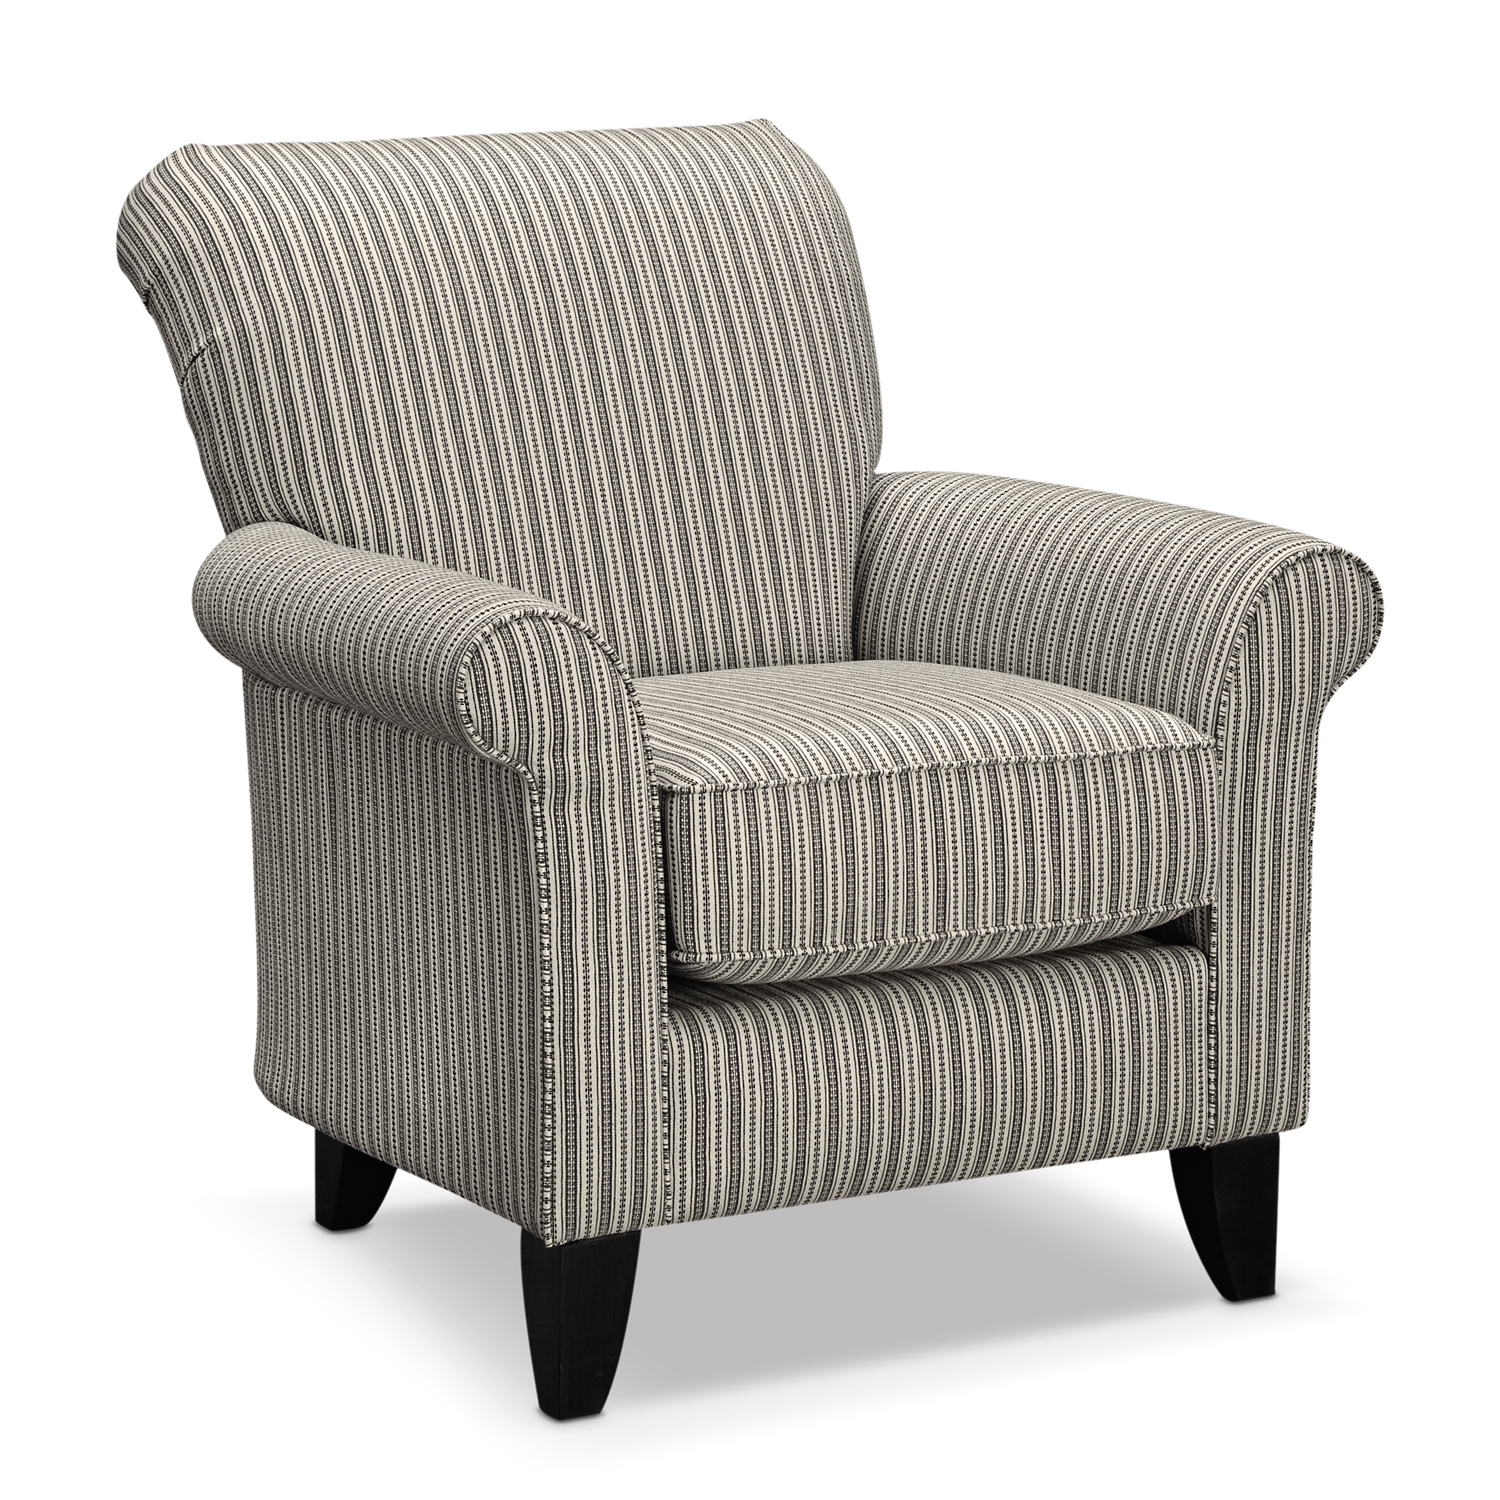 Brilliant Accent Chair For Home Furniture Ideas With Accent Chairs With Arms And Accent Chairs For Living Room